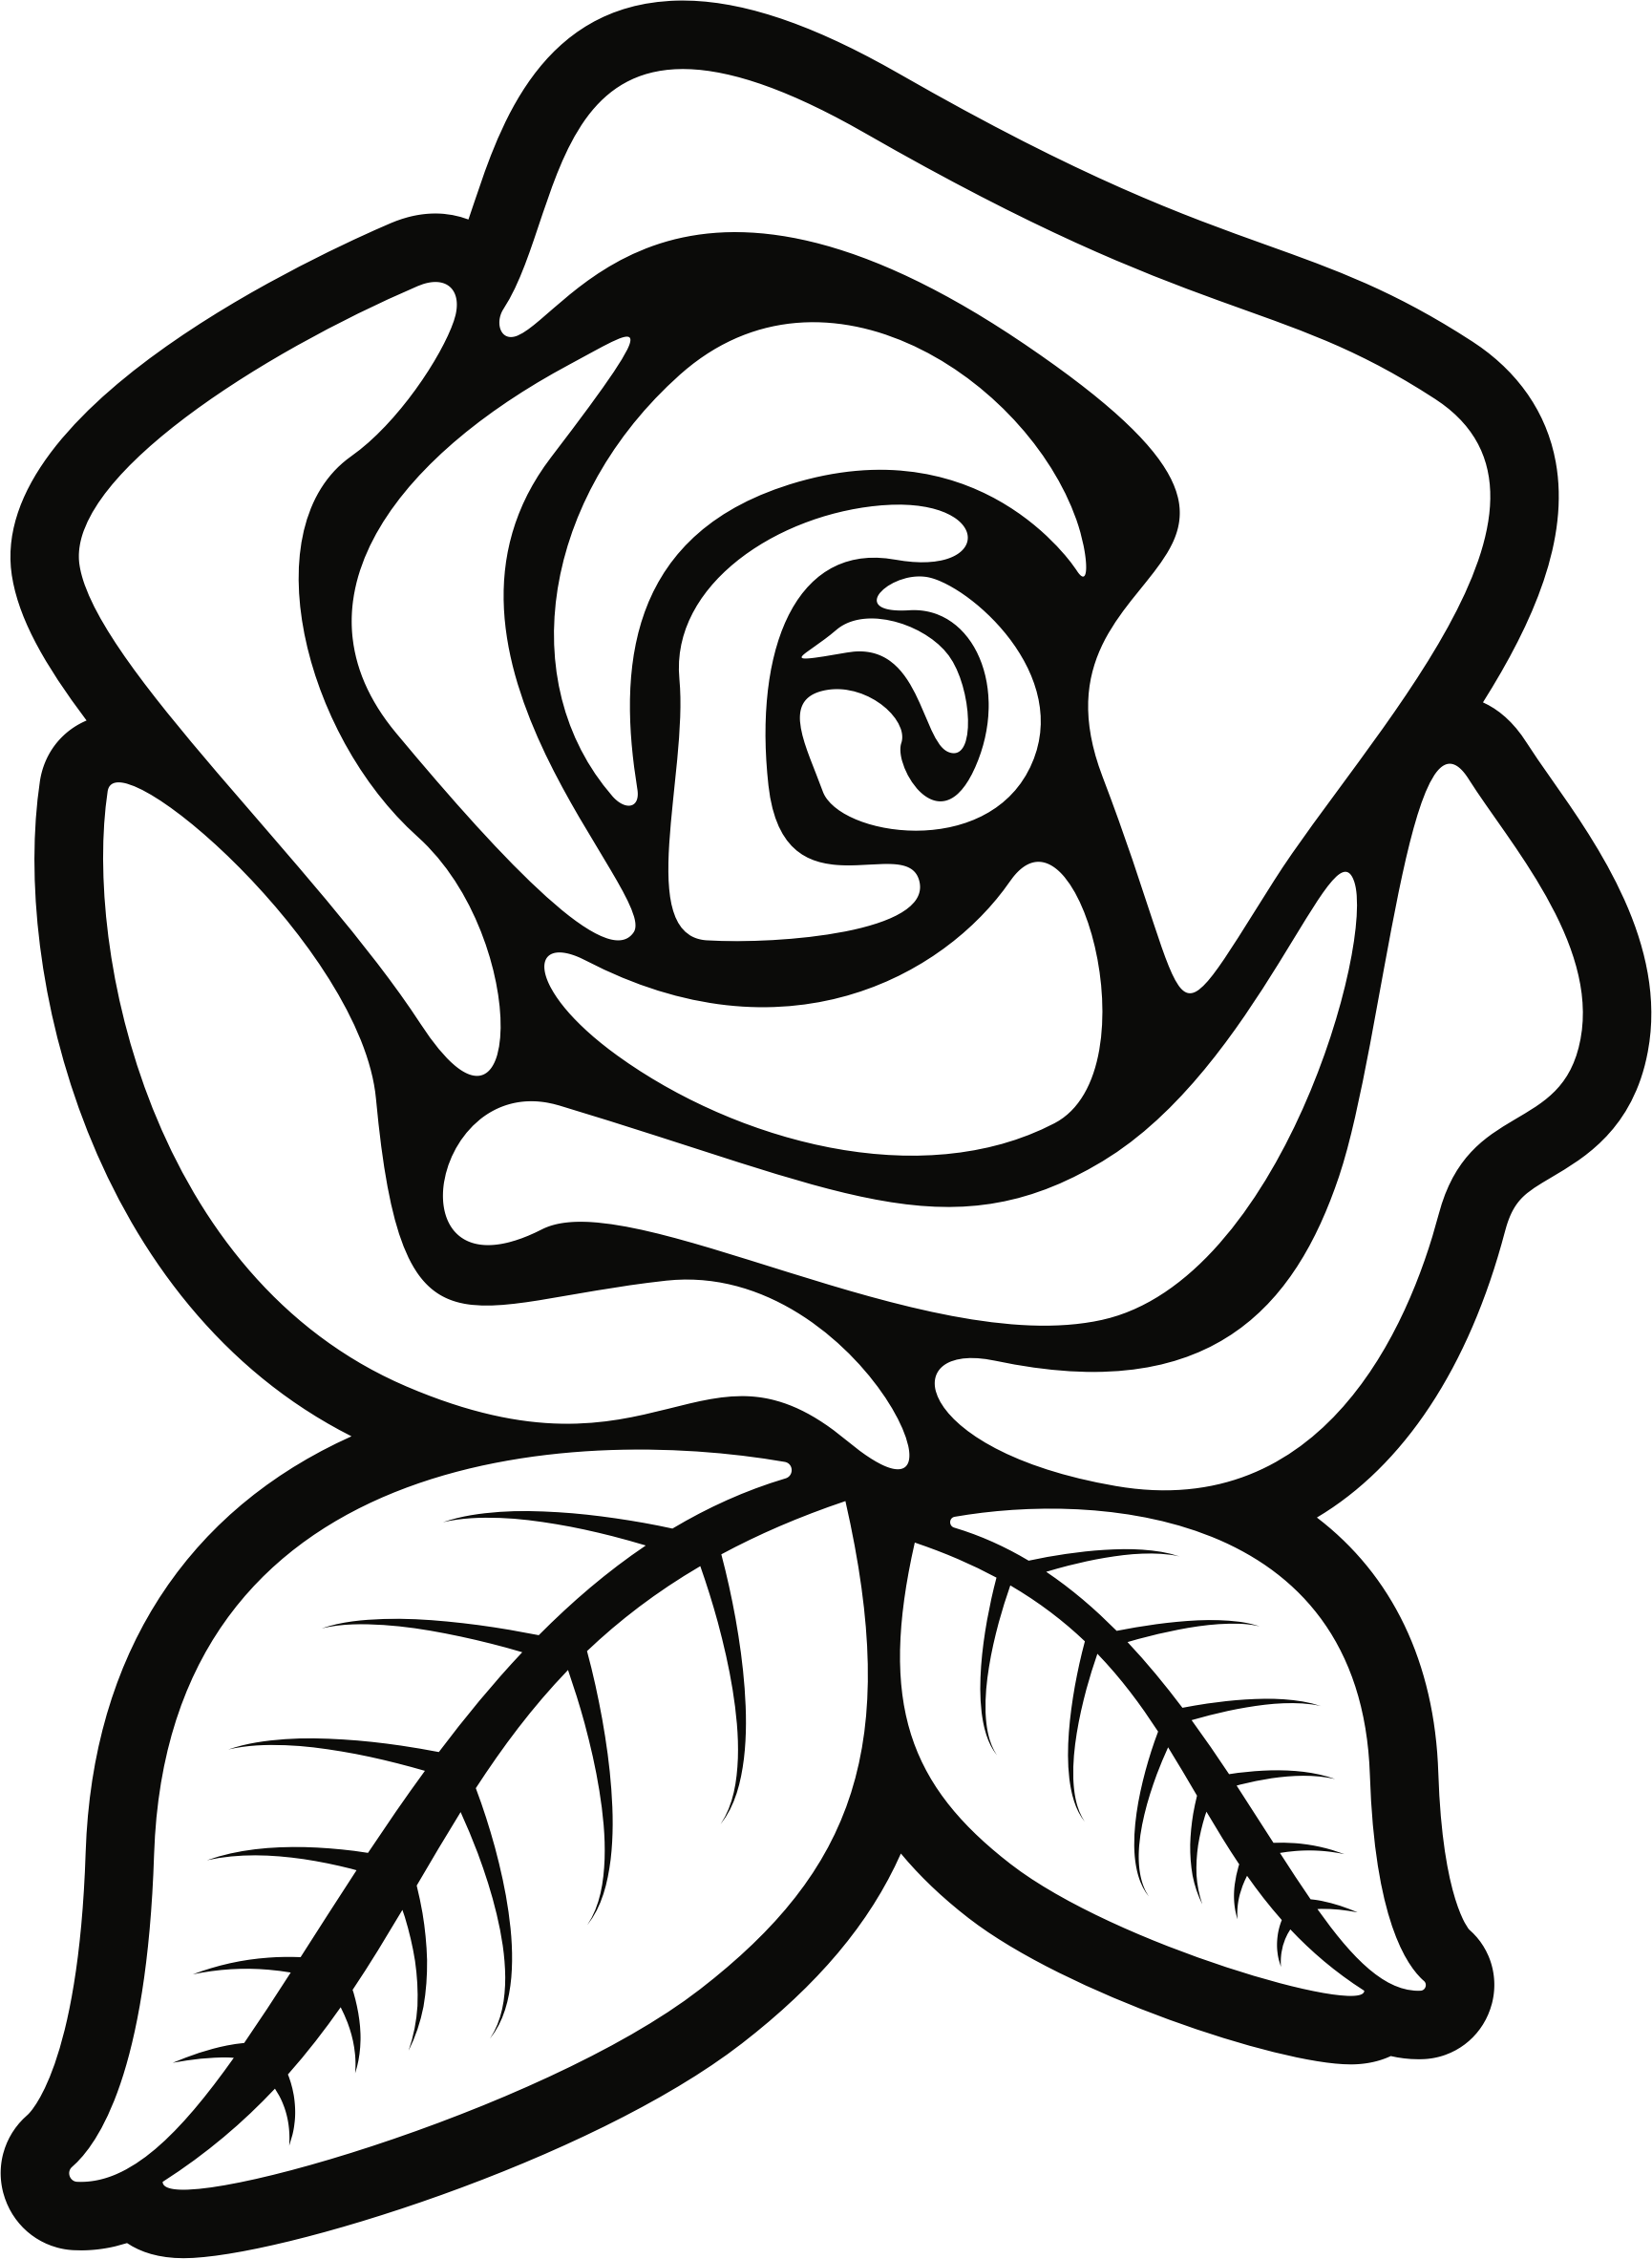 Black And White Rose Tattoo PNG Background Photo